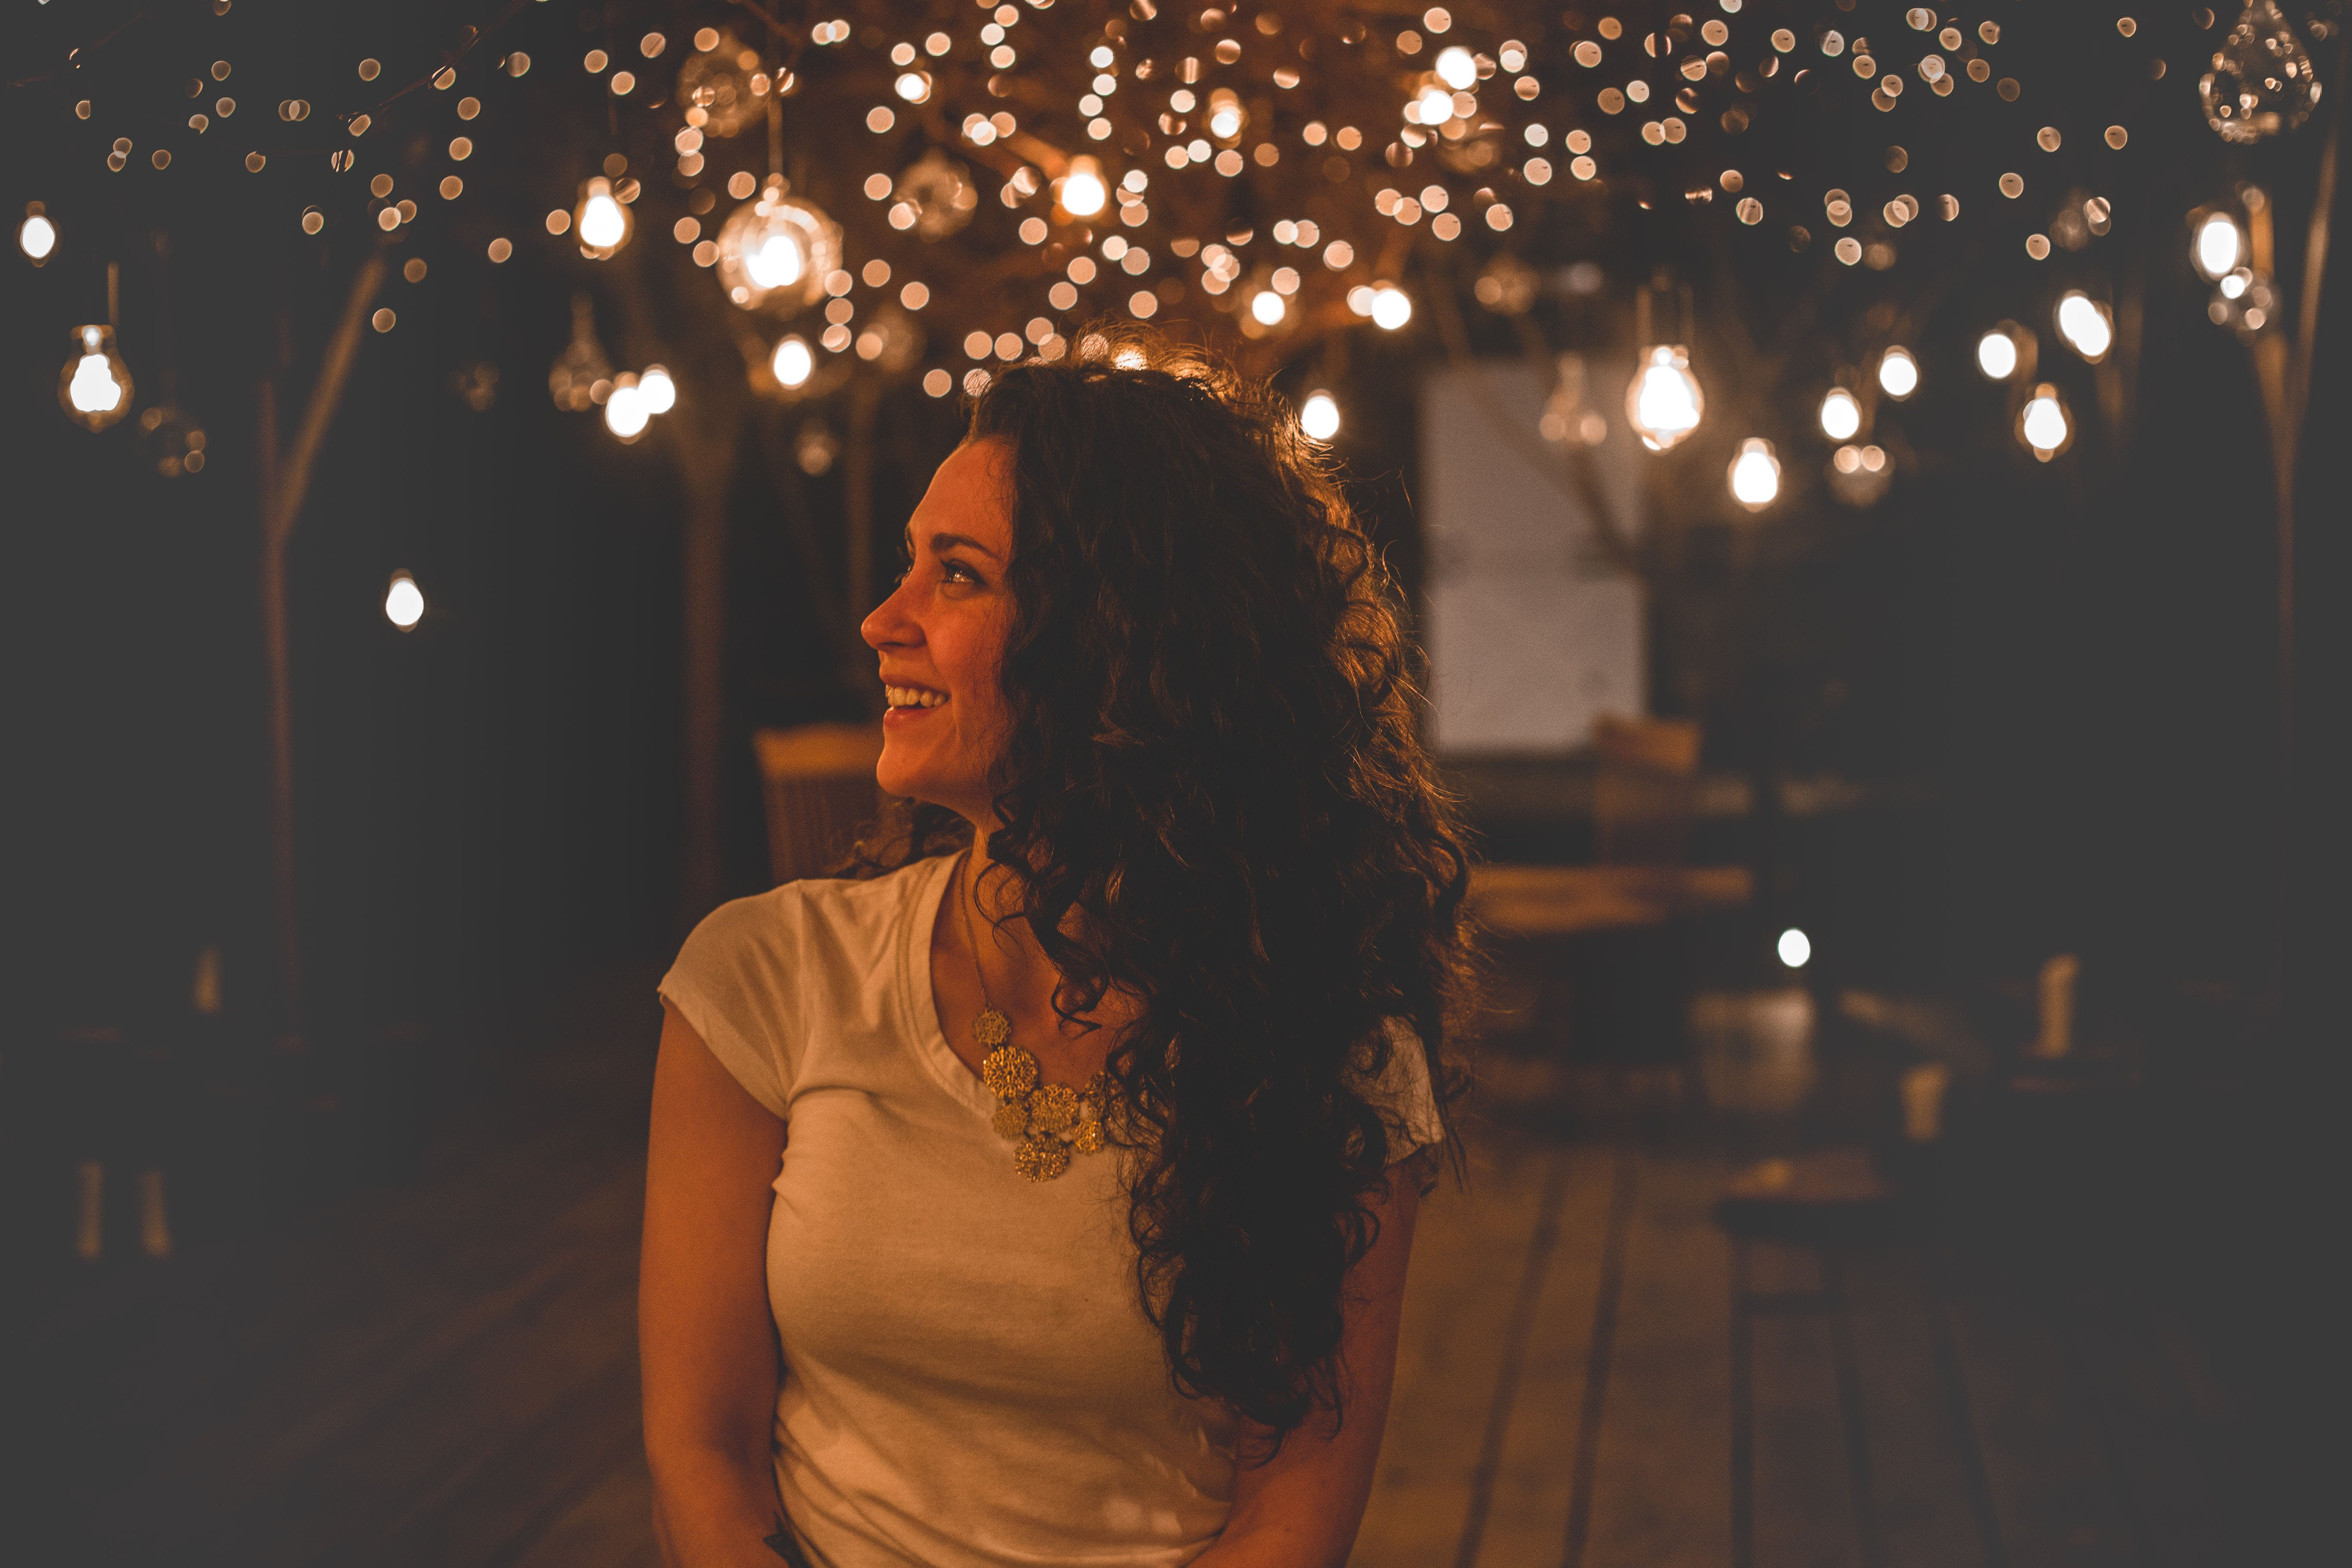 Smiling Woman Under String Lights